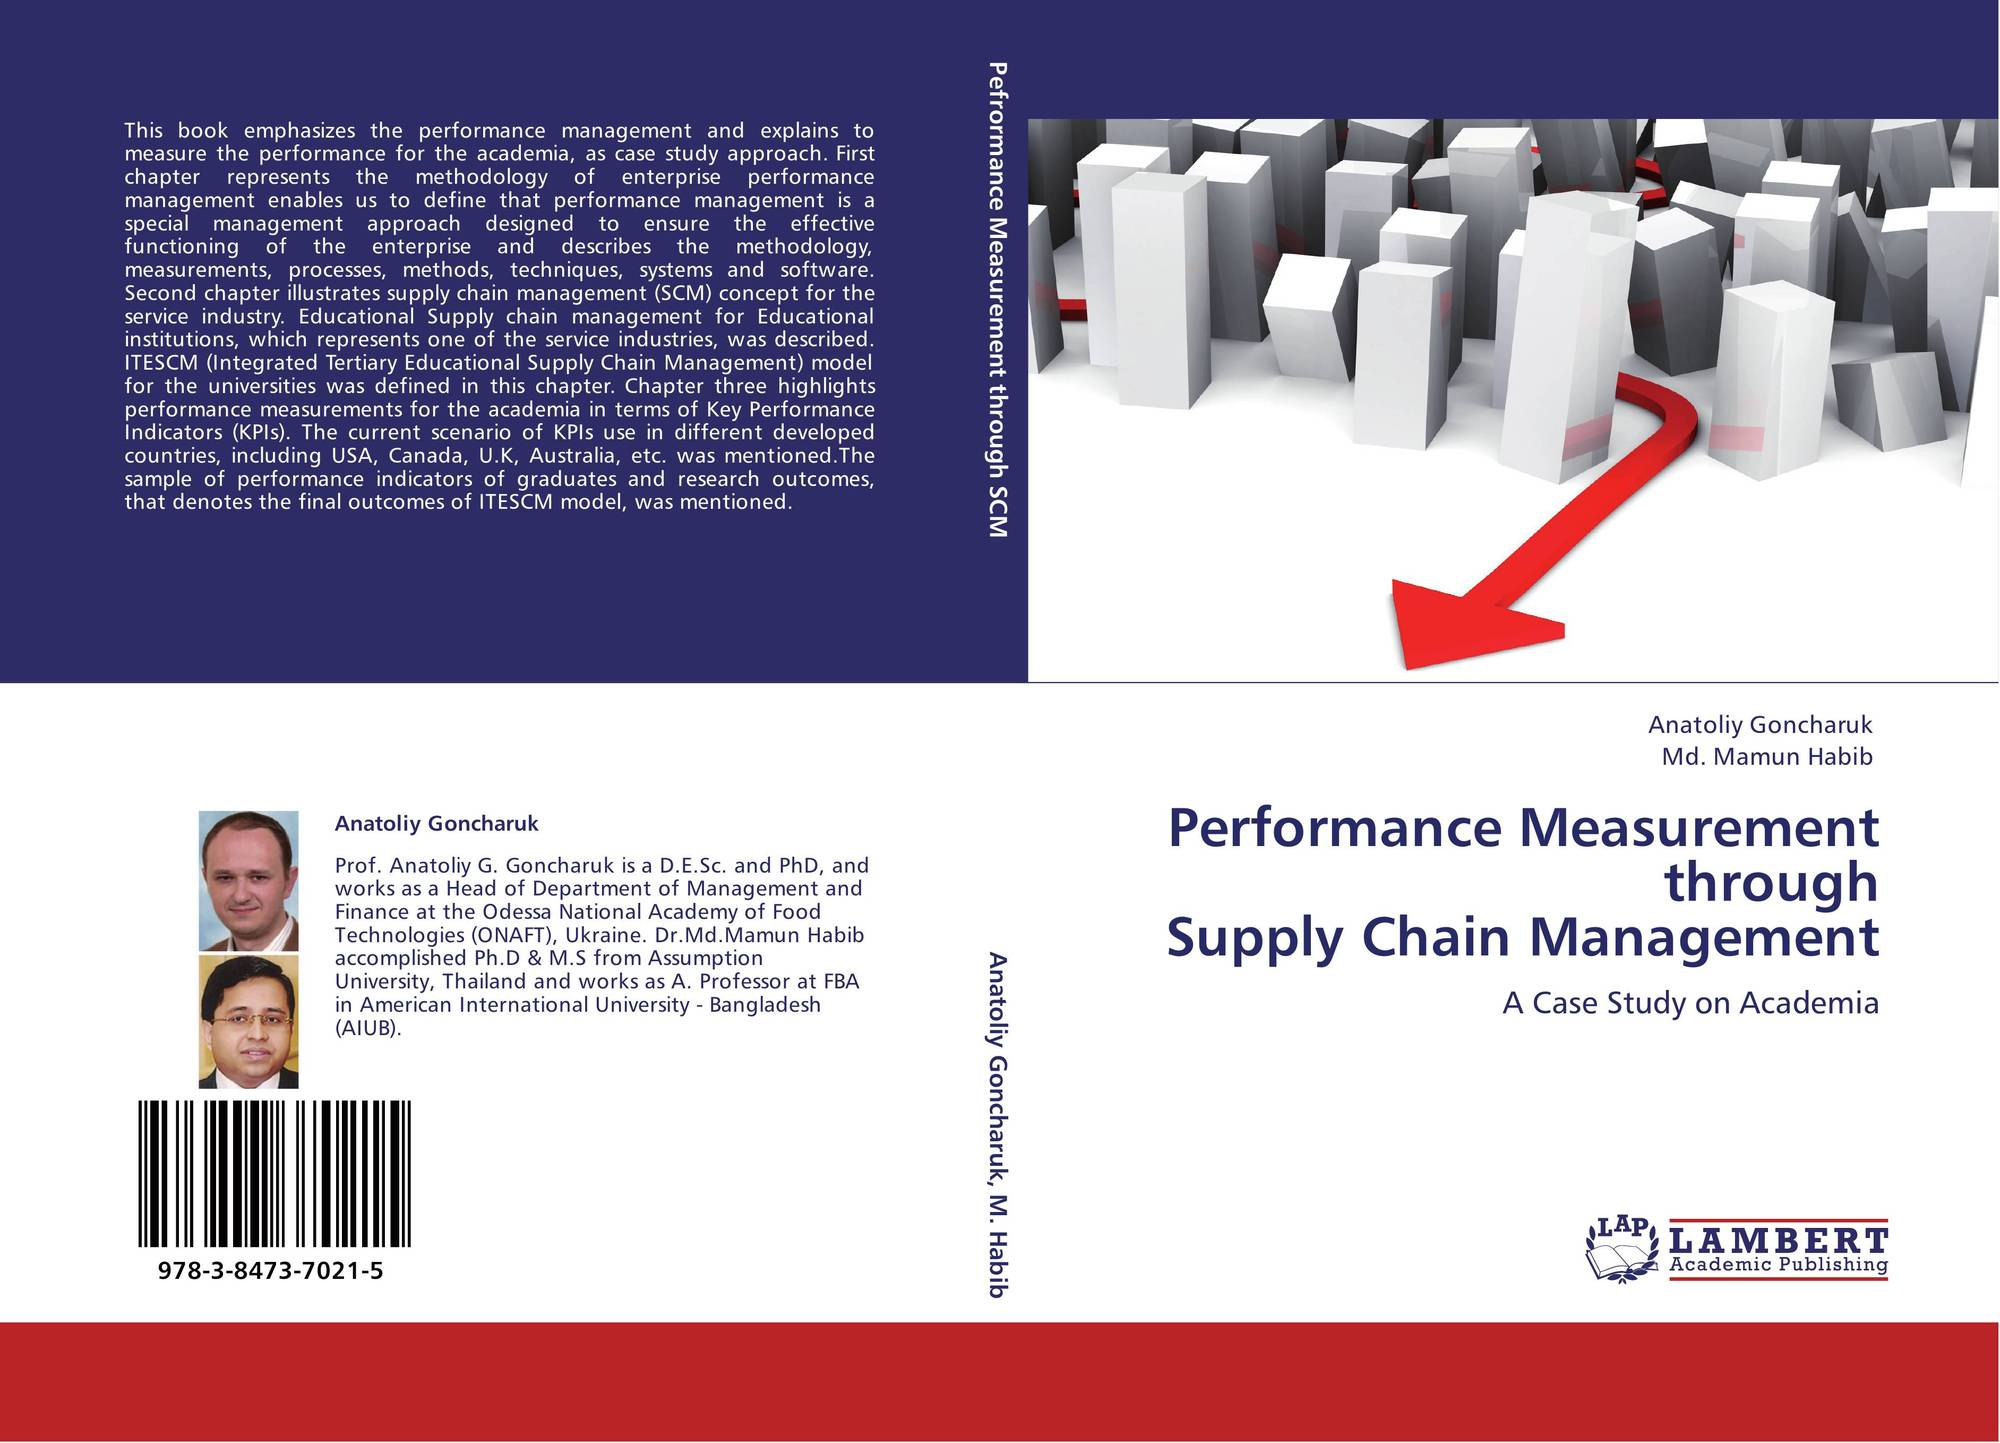 supply chain performance measurement case study